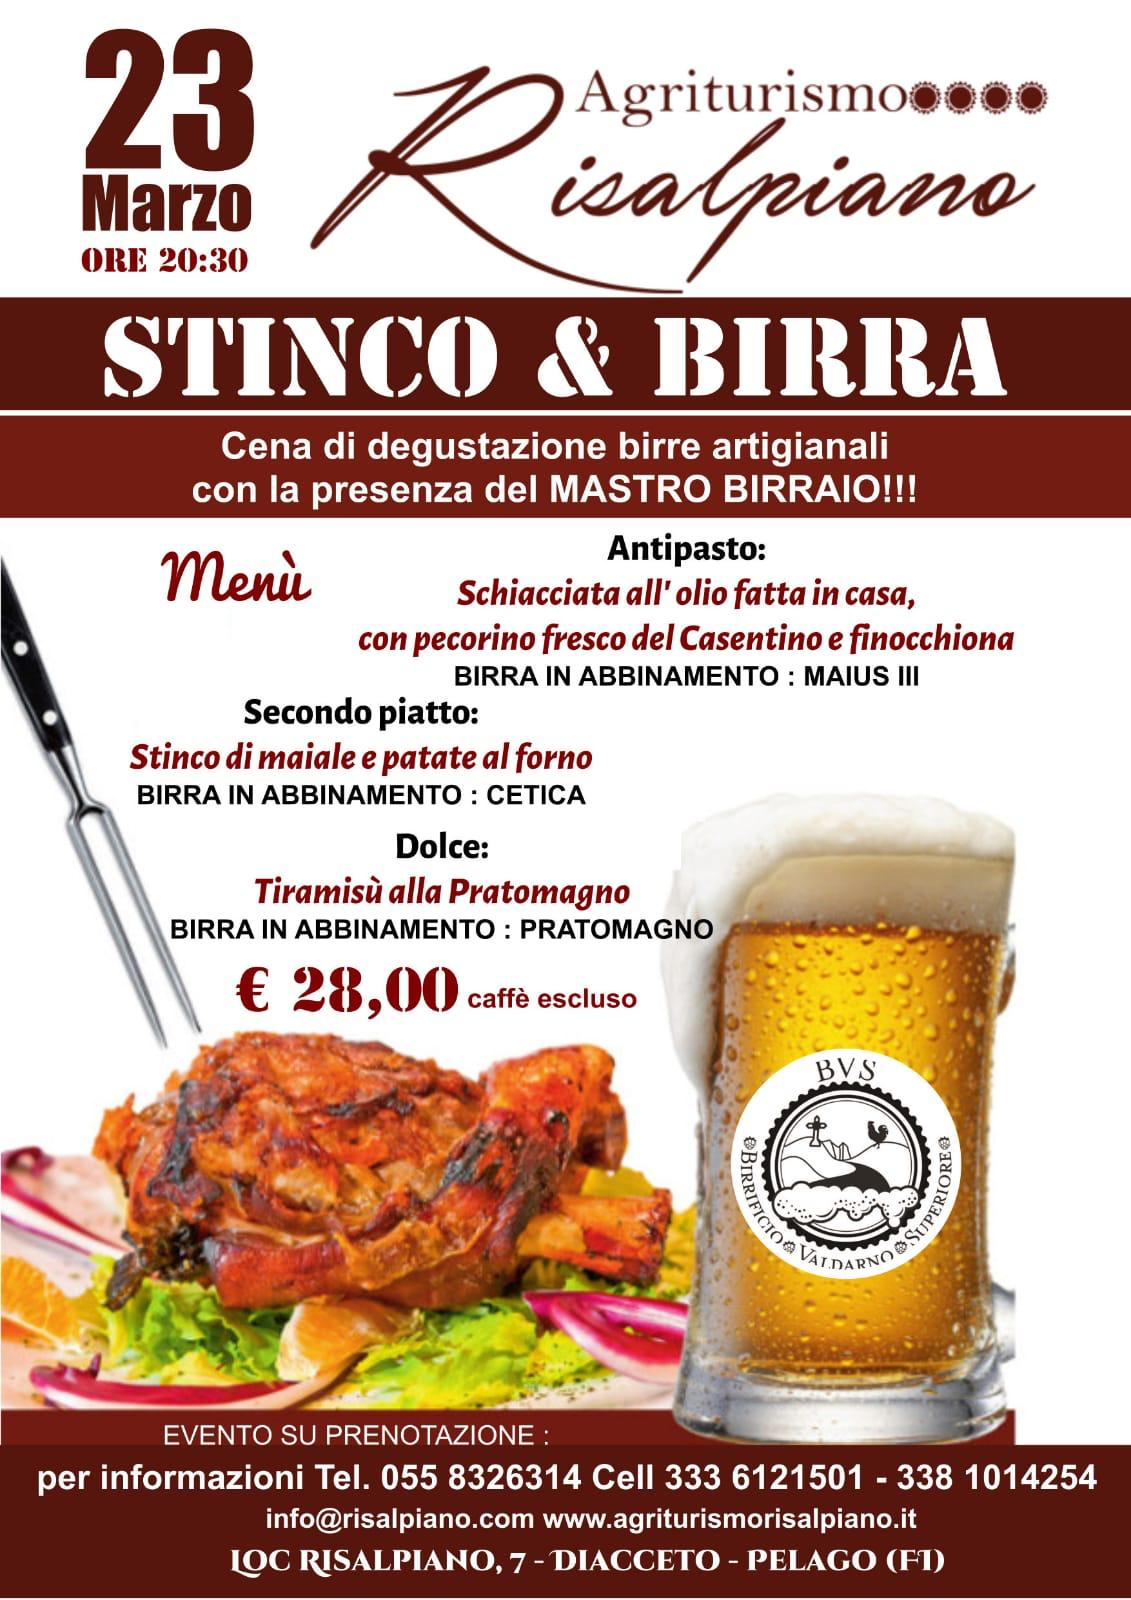 Stinco & Birra